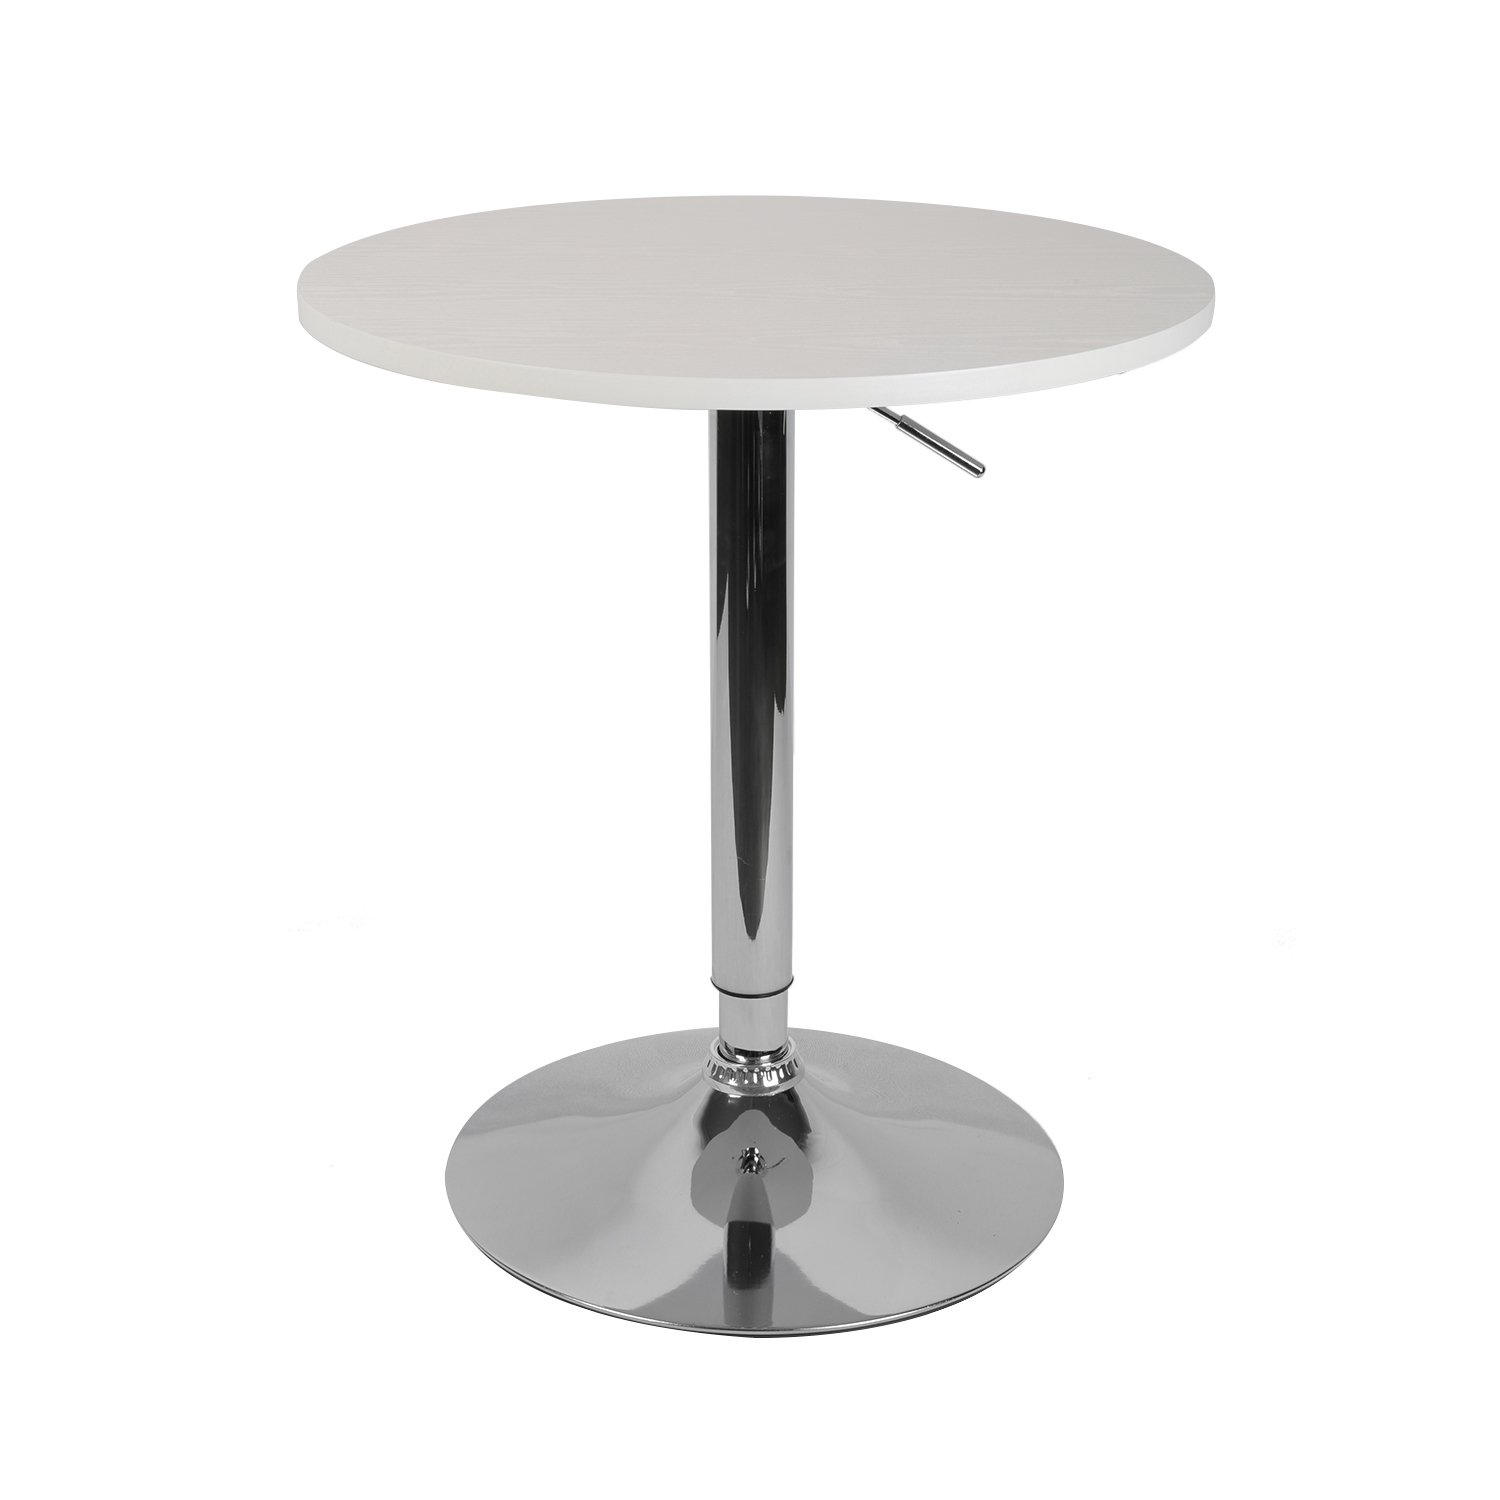 """LCH 23.6"""" Round Dining Bar Table Adjustable 360 Swivel Kitchen Home Bar Furniture MDF Top Bistro Pub Table with Black Base, 29""""-35.8"""" Height, White"""